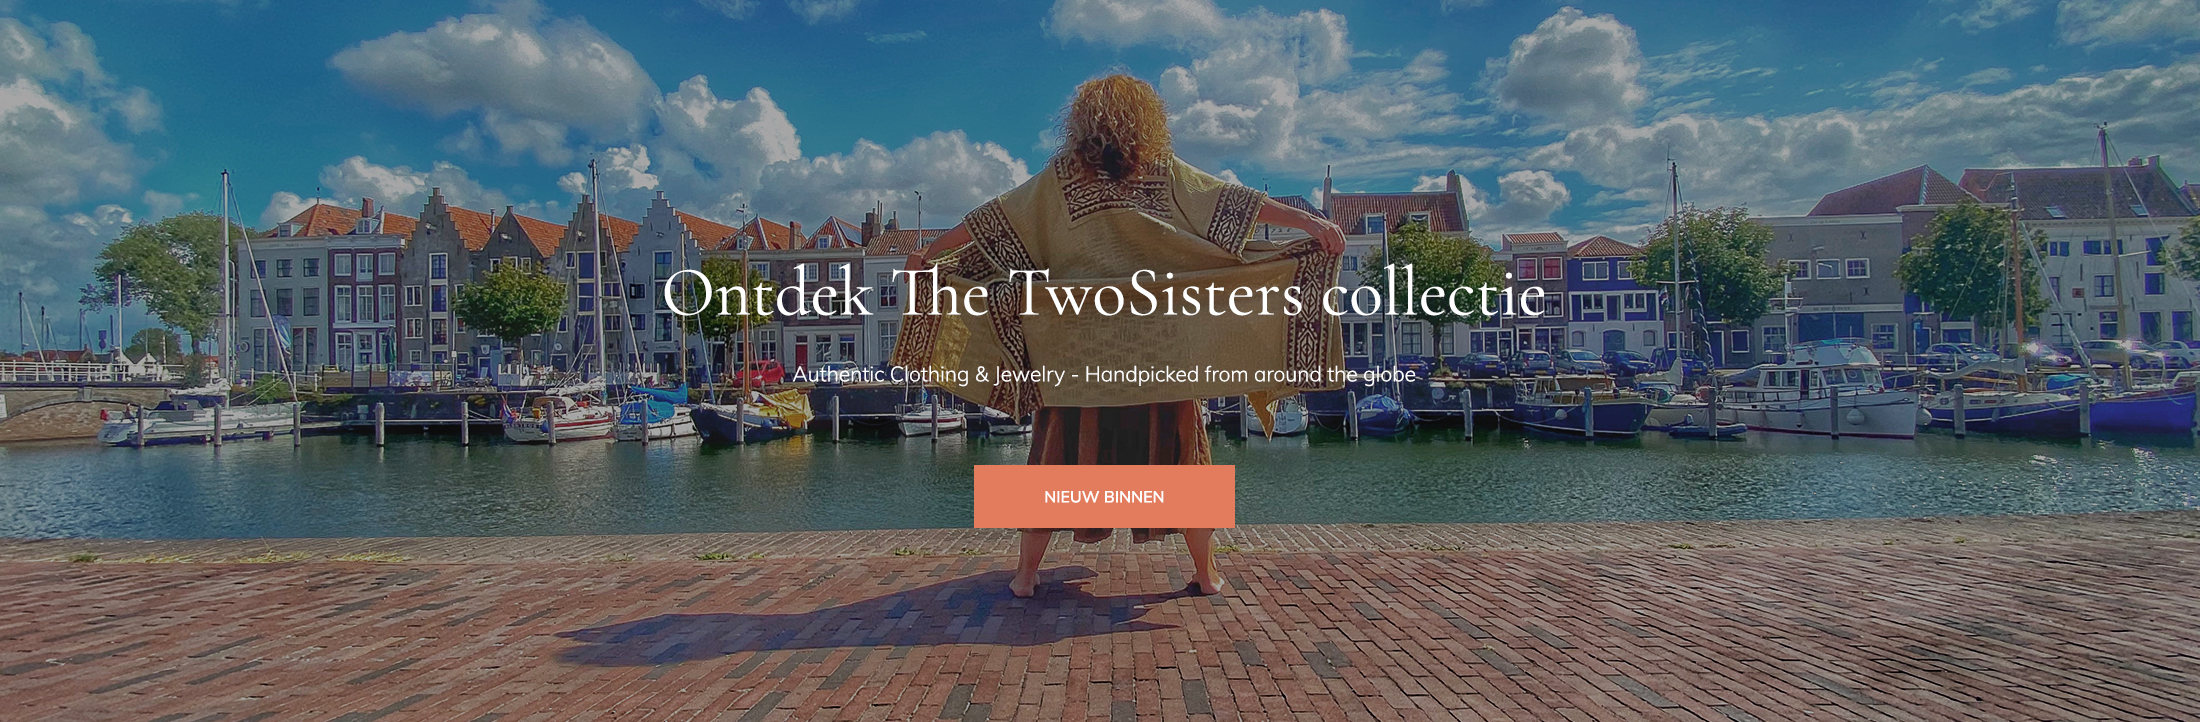 The two sisters webshop herfst/winter collectie